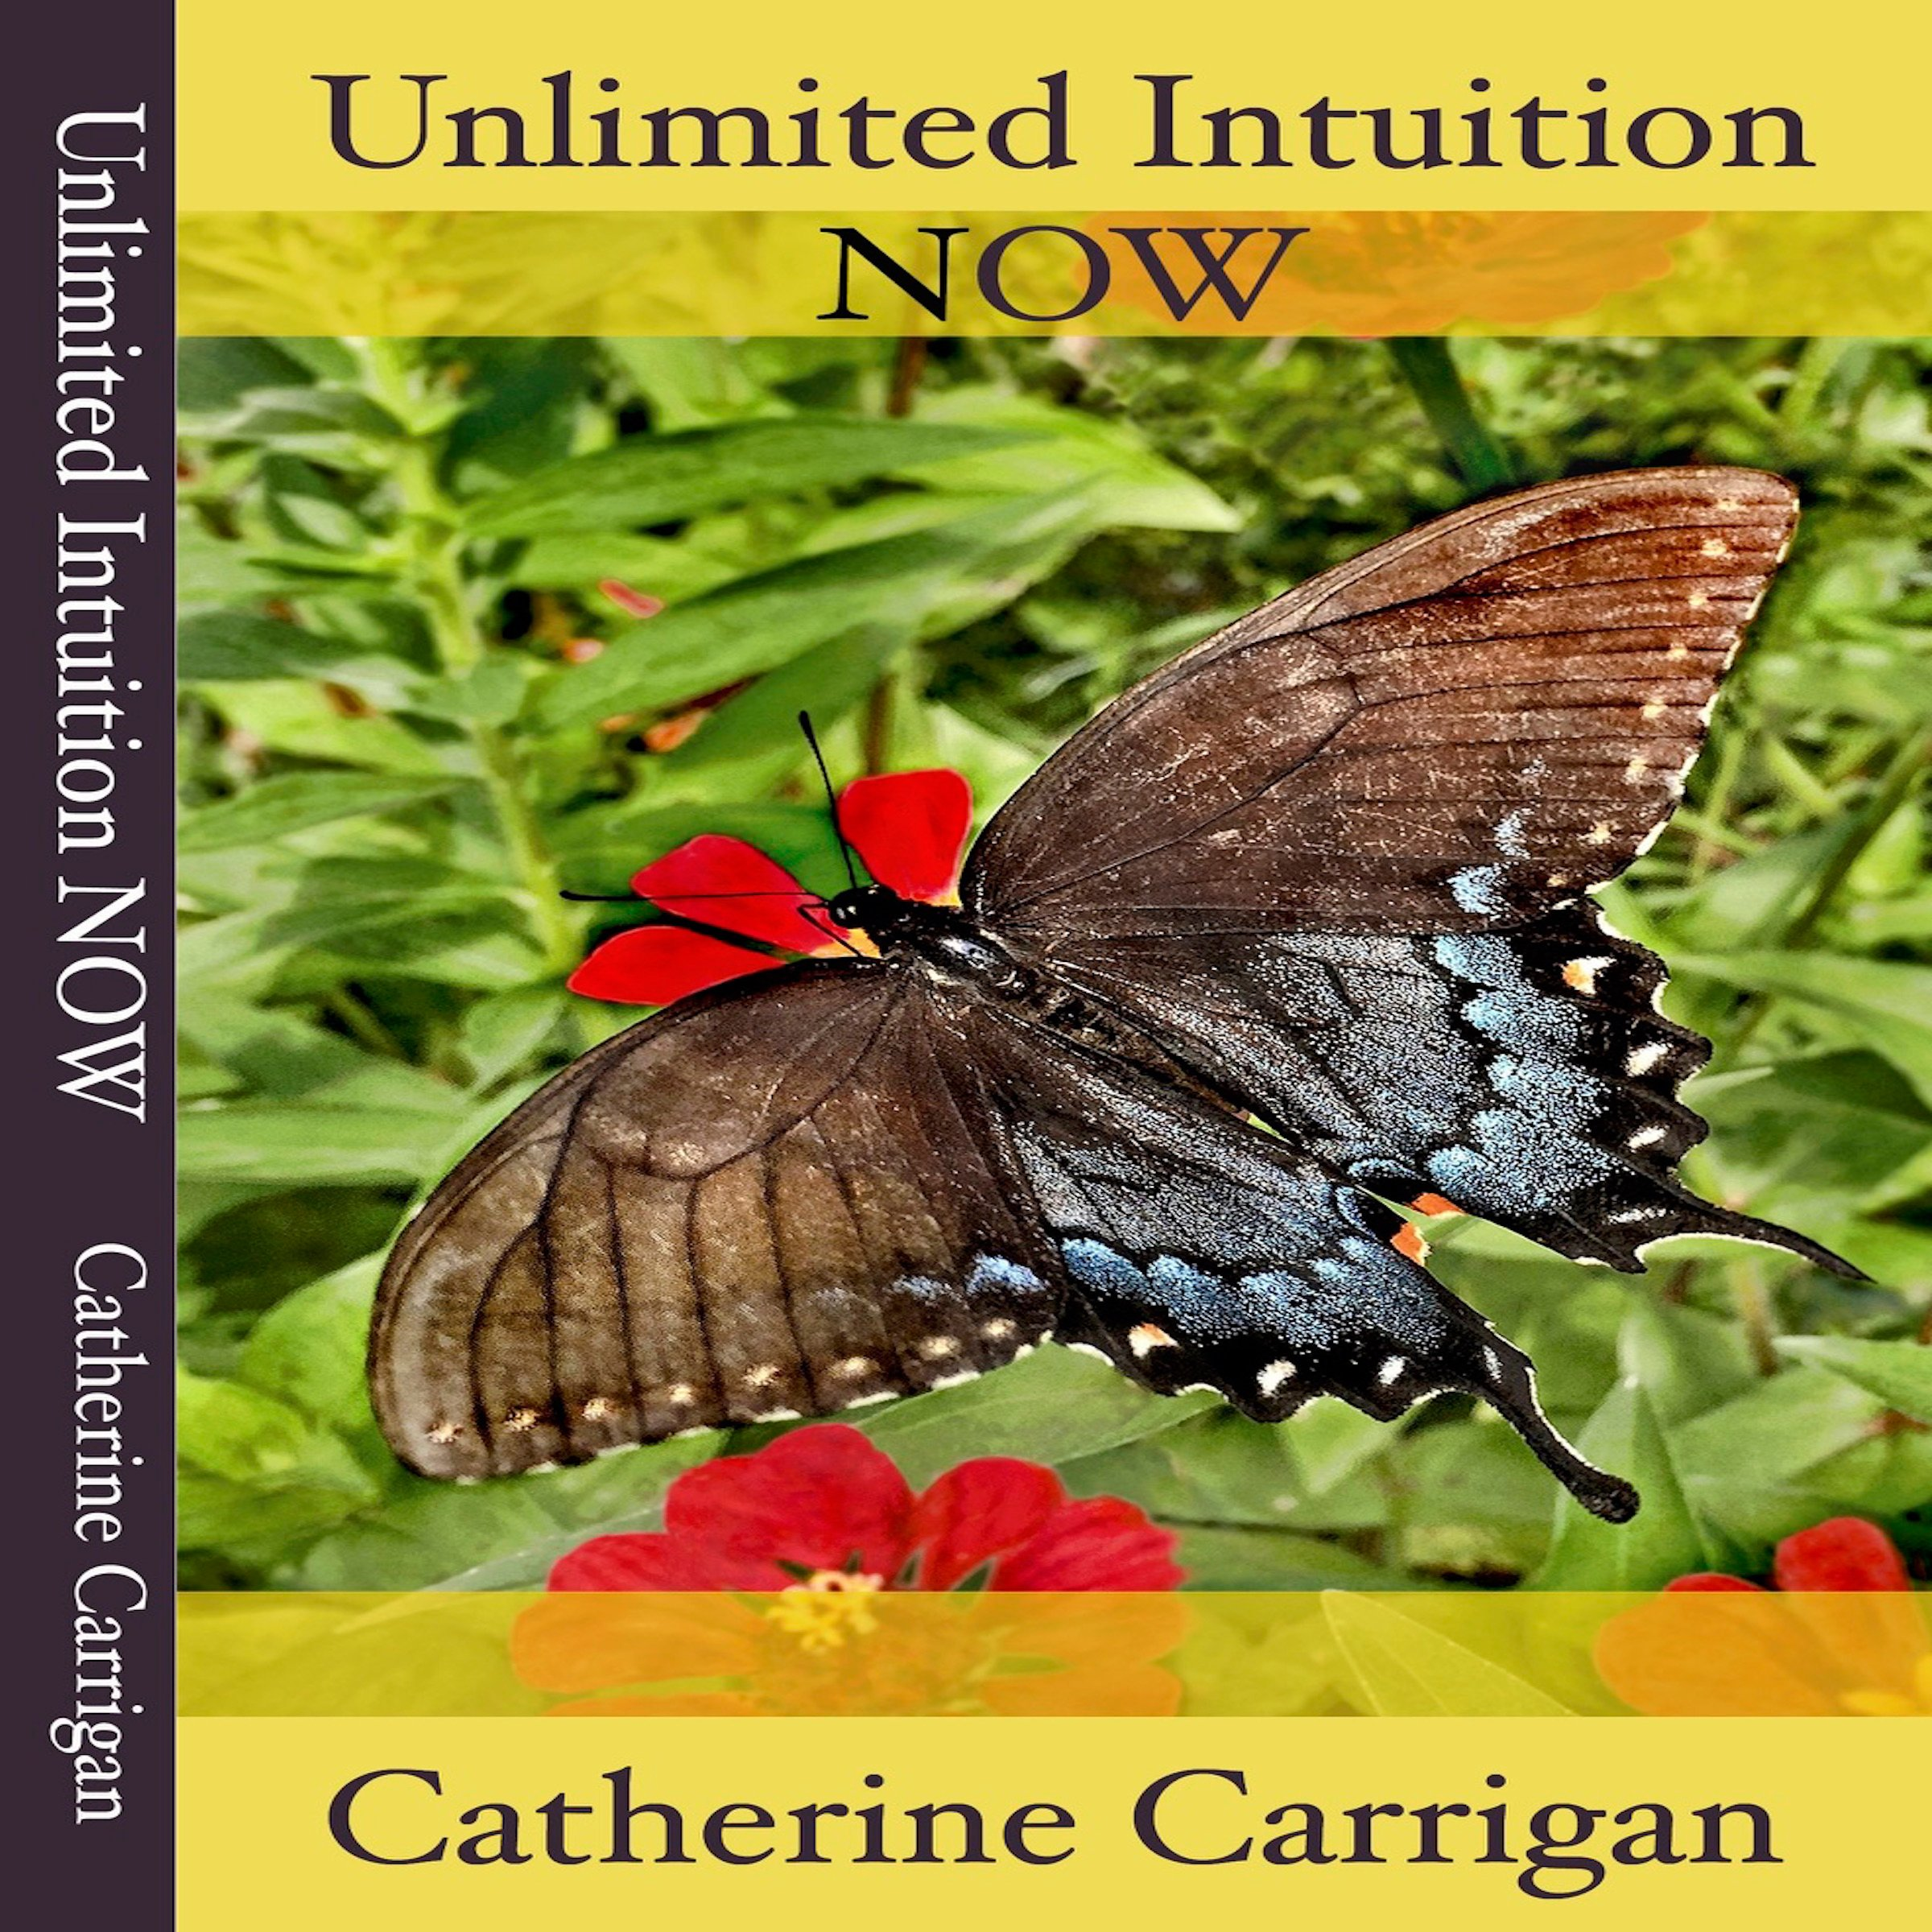 Unlimited Intuition NOW